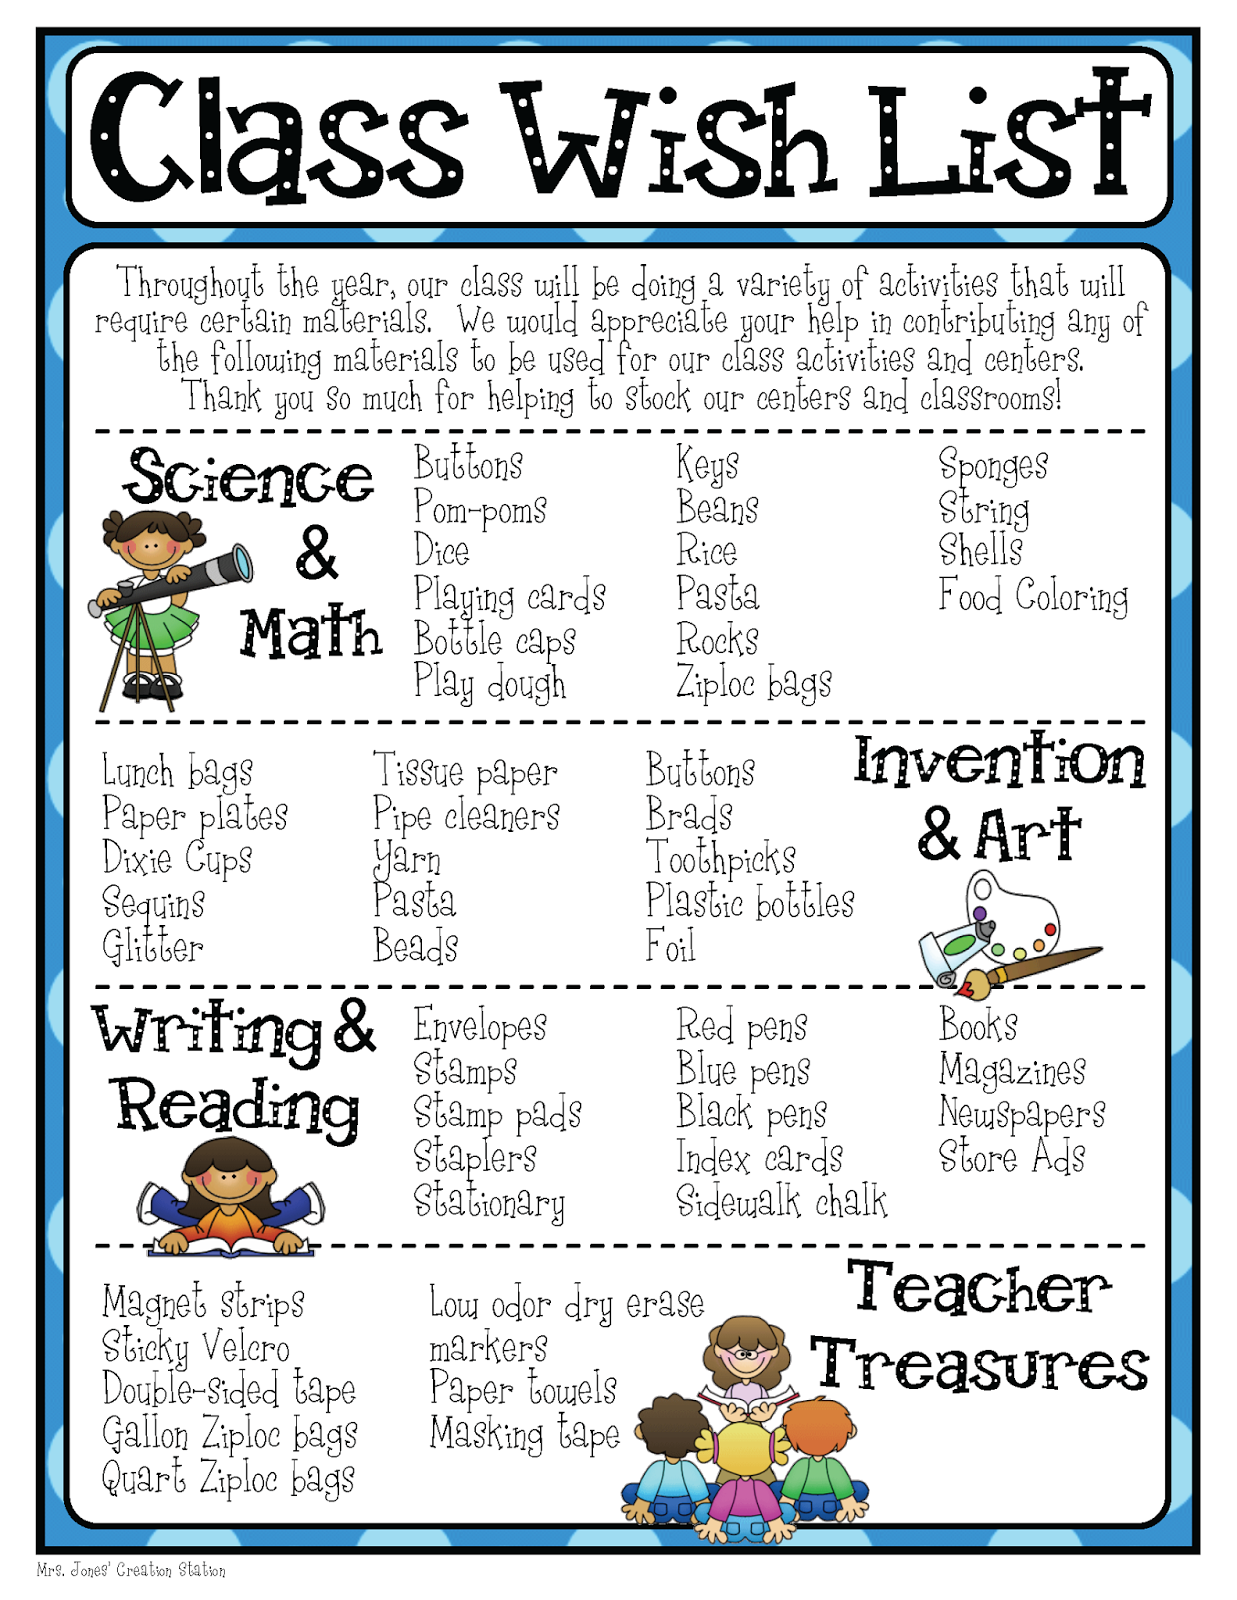 Classroom Theme Ideas List ~ Mrs jones creation station class wish list parent